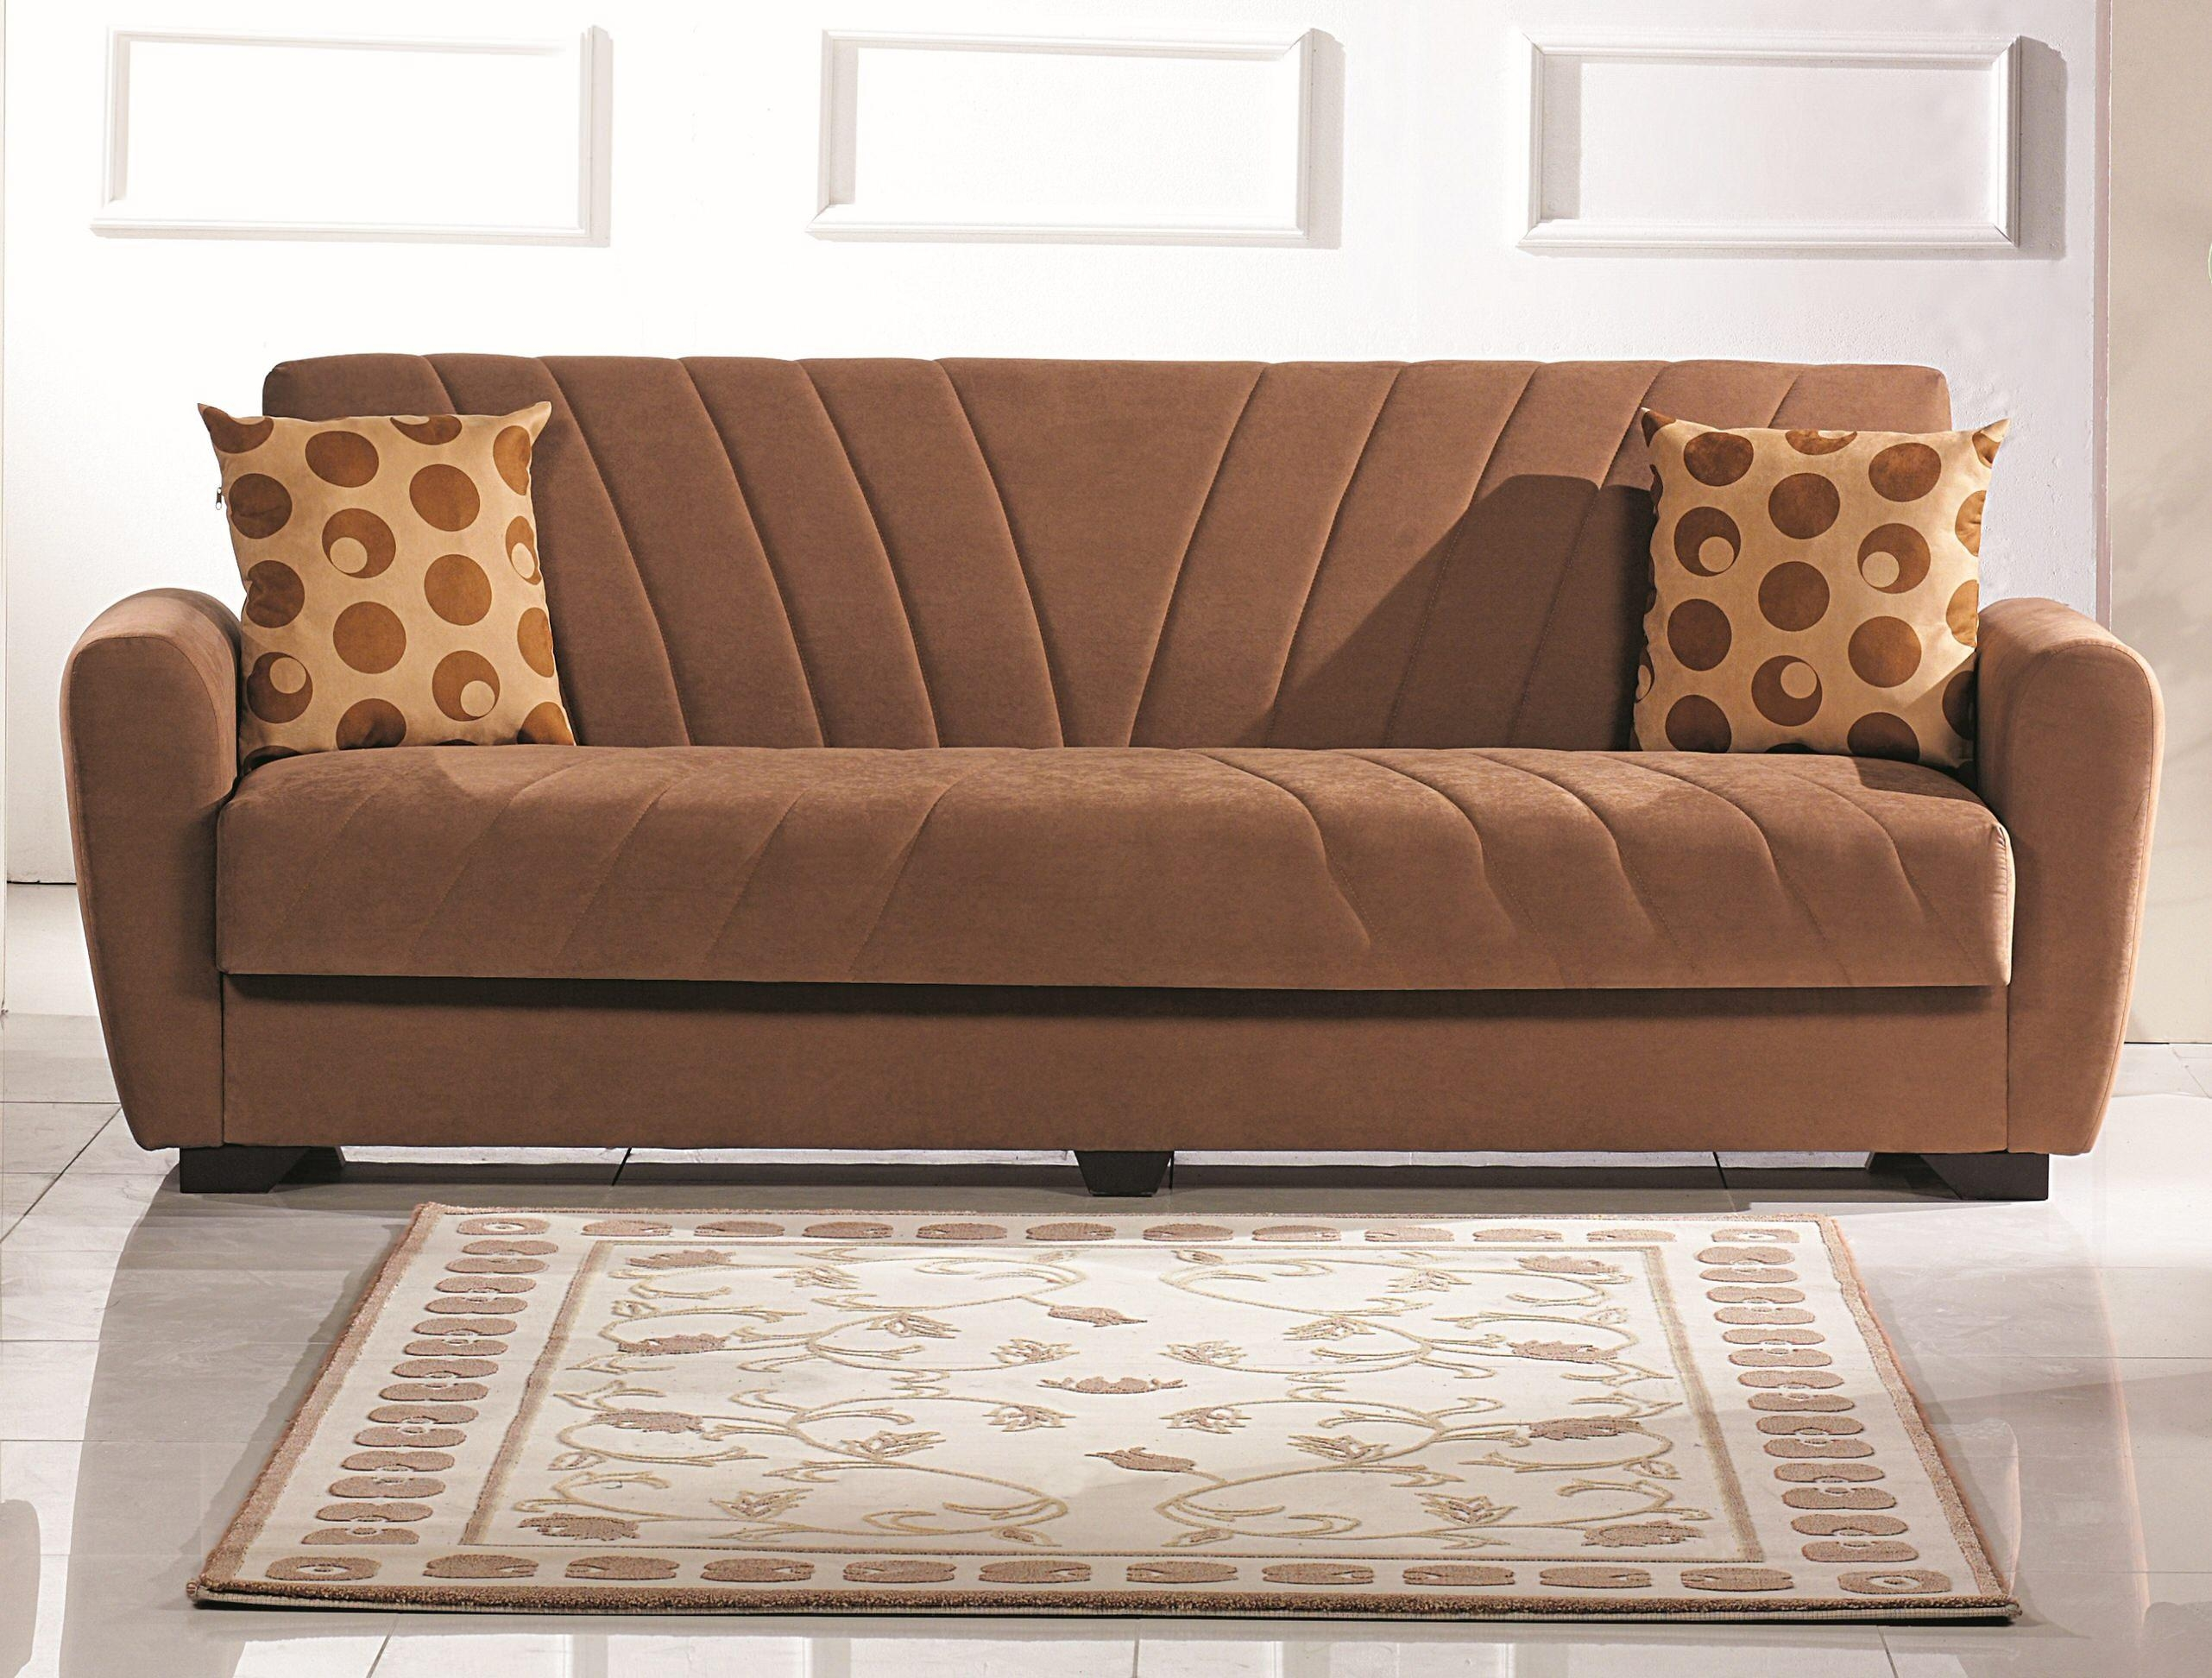 Tampa Sofa Bedempire Furniture Usa Intended For Sofas Tampa (Image 20 of 20)